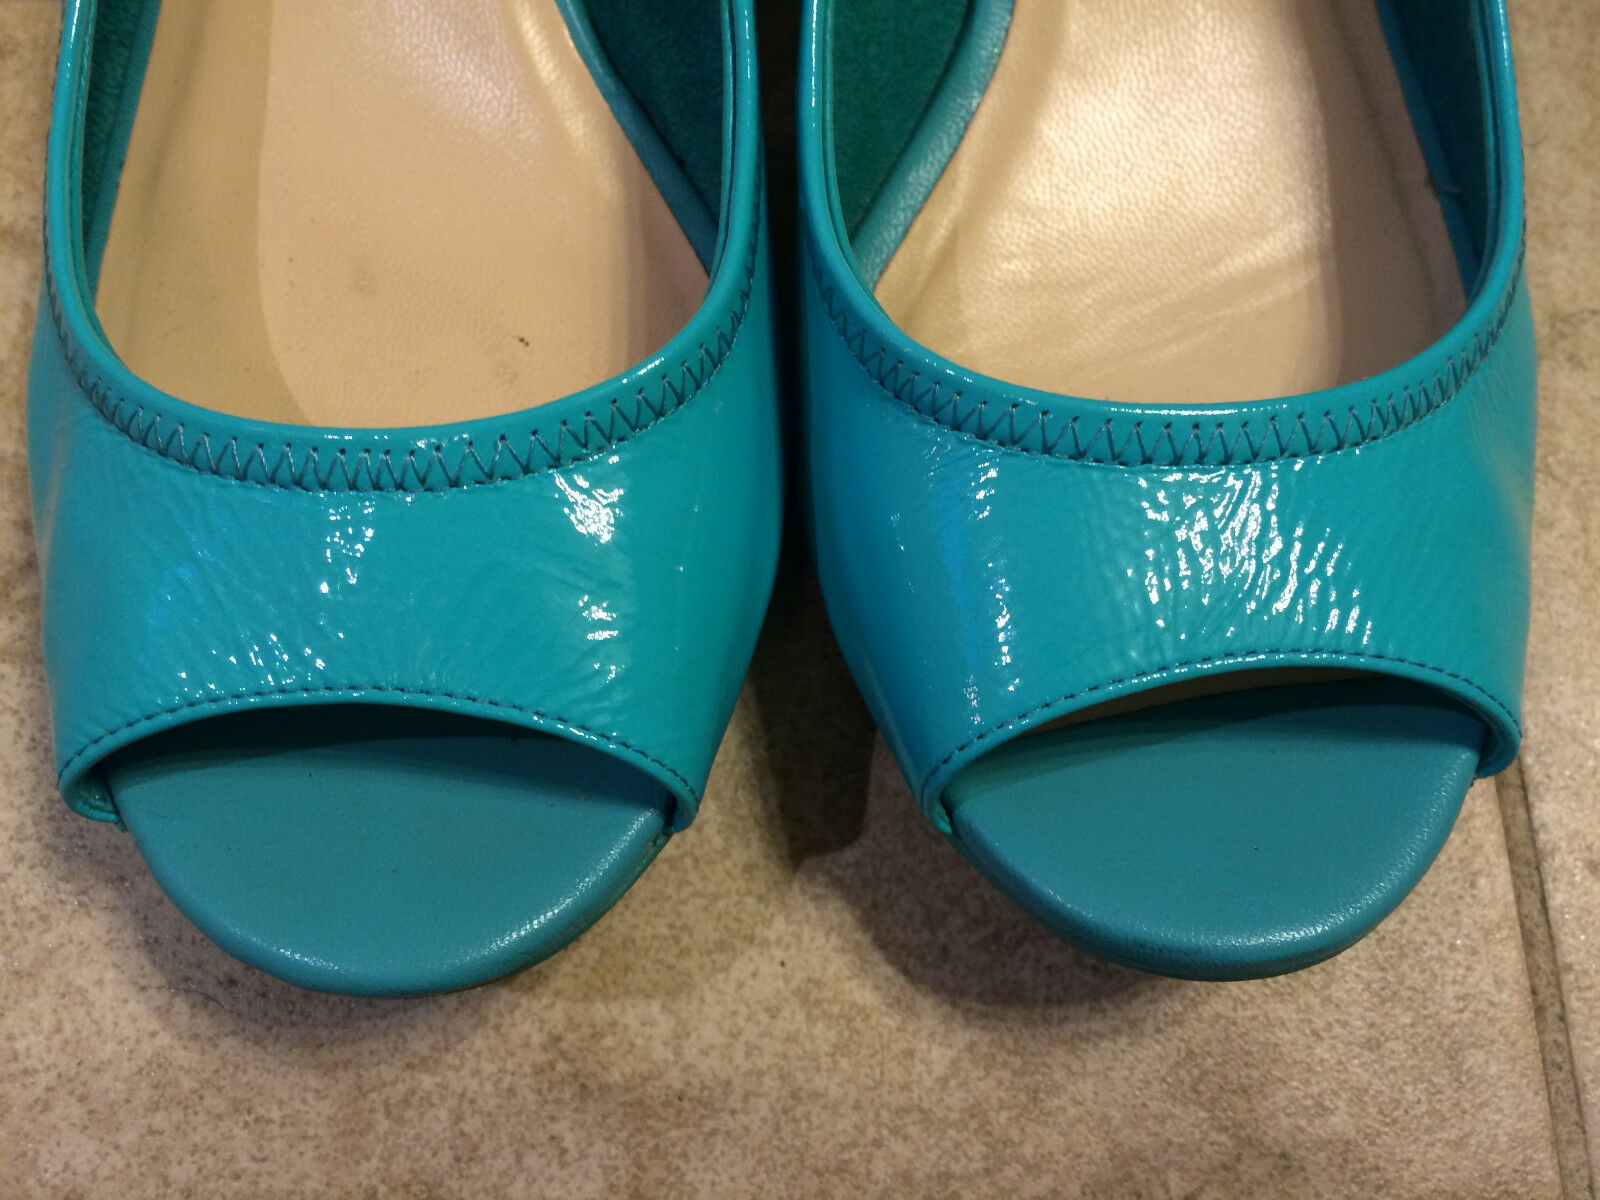 Cole Haan Blau Poolside Patent Leder Small Wedge Schuhes 7B 7B Schuhes Pre-Own 44bfcf